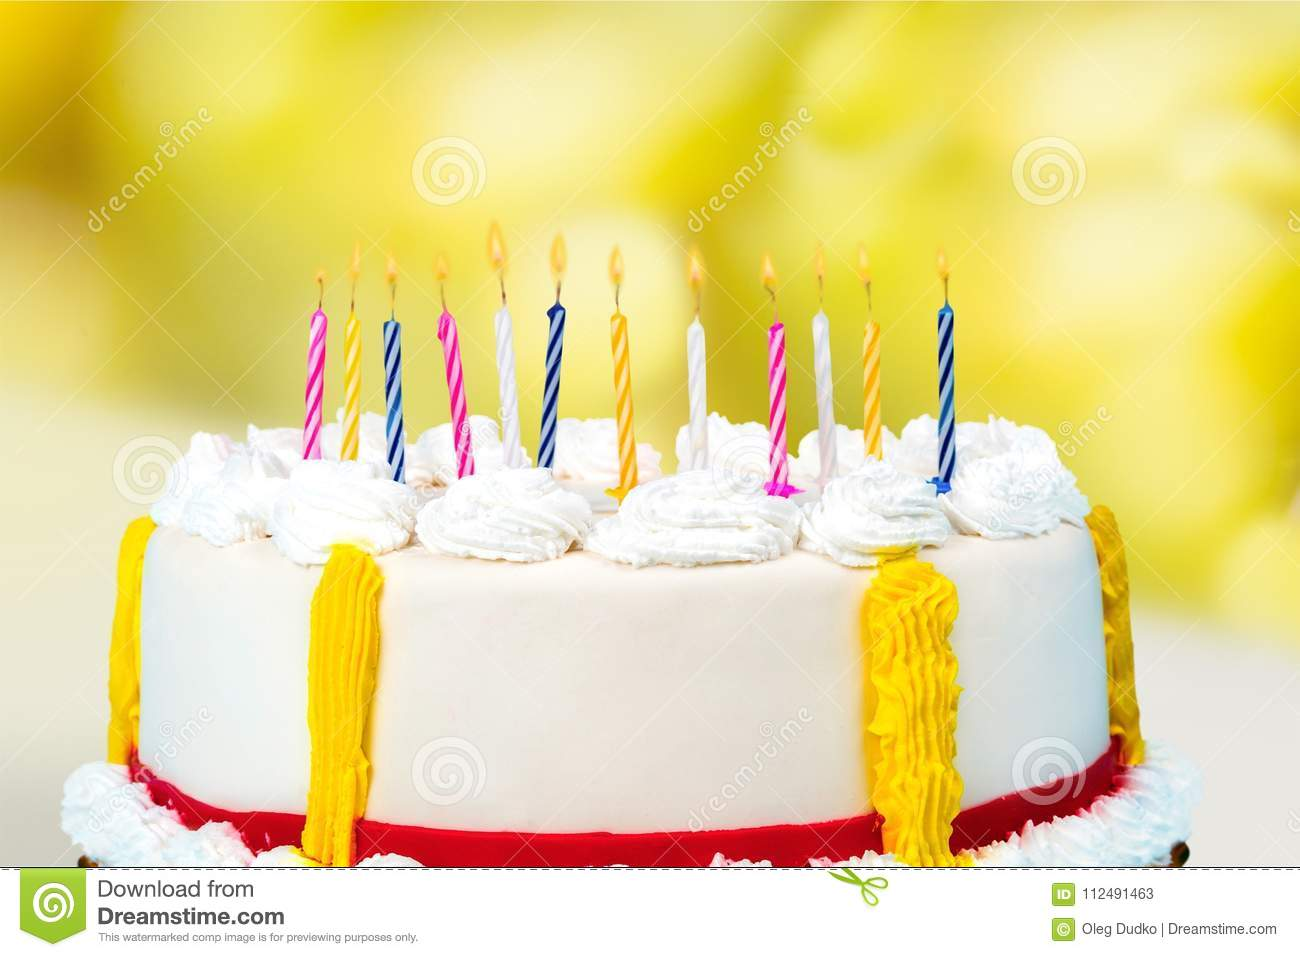 Birthday Day Cake Candles Table Color Fun